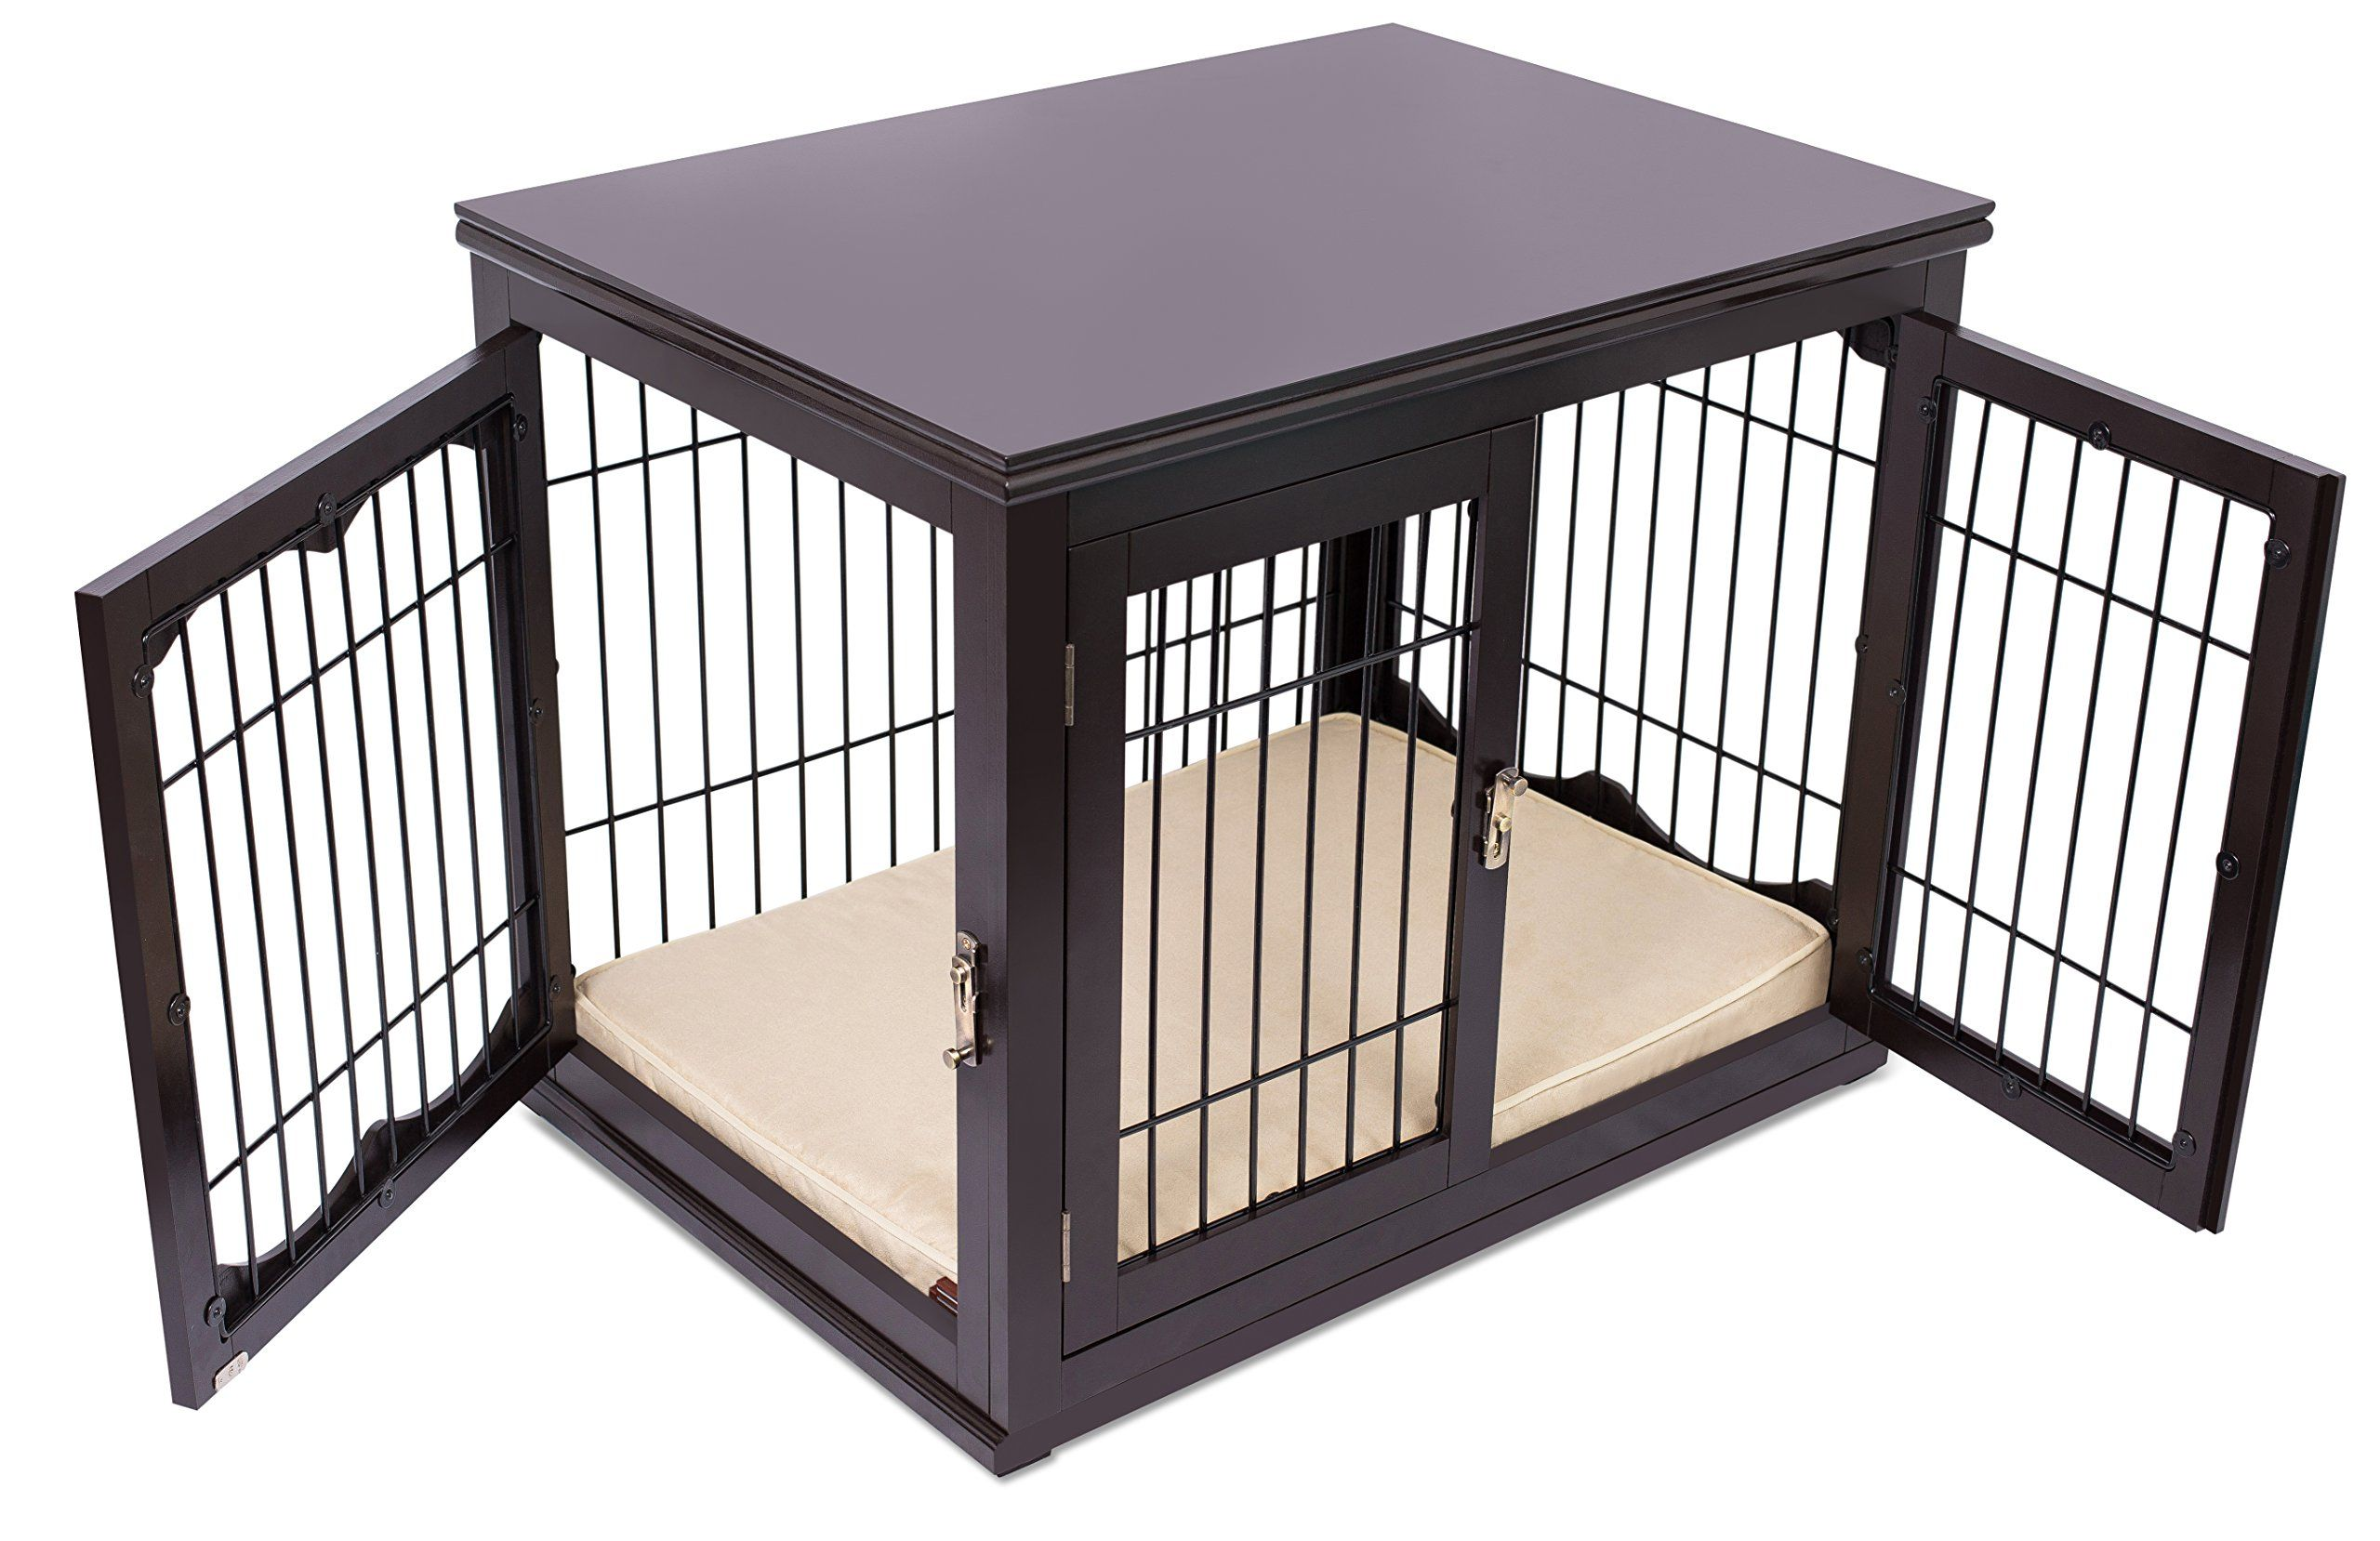 Internets Best Decorative Dog Kennel With Pet Bed Double Door